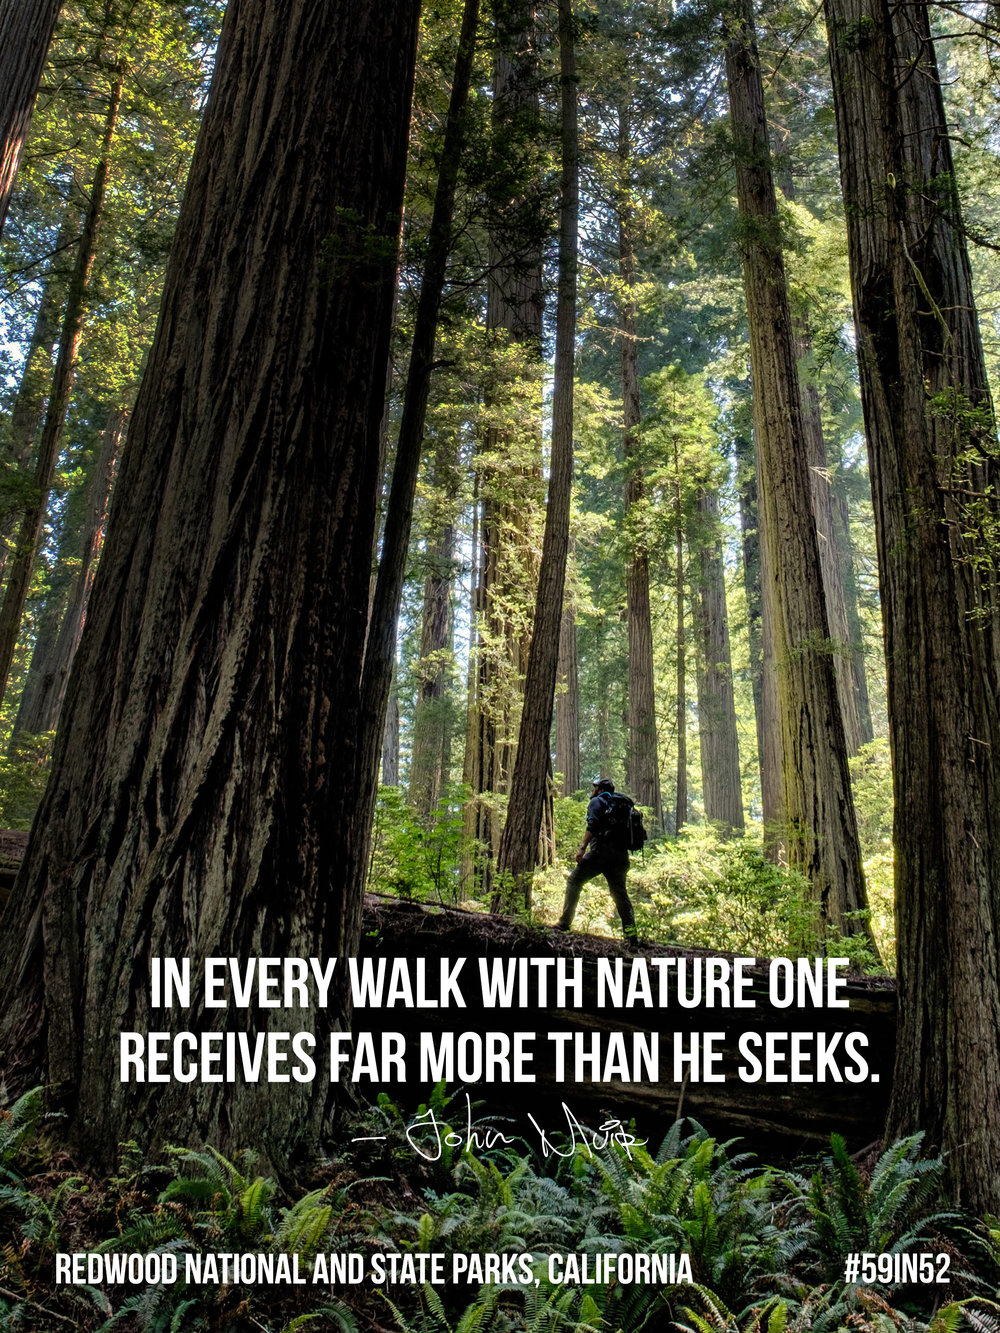 'In every walk with nature one receives far more than he seeks.' – John Muir